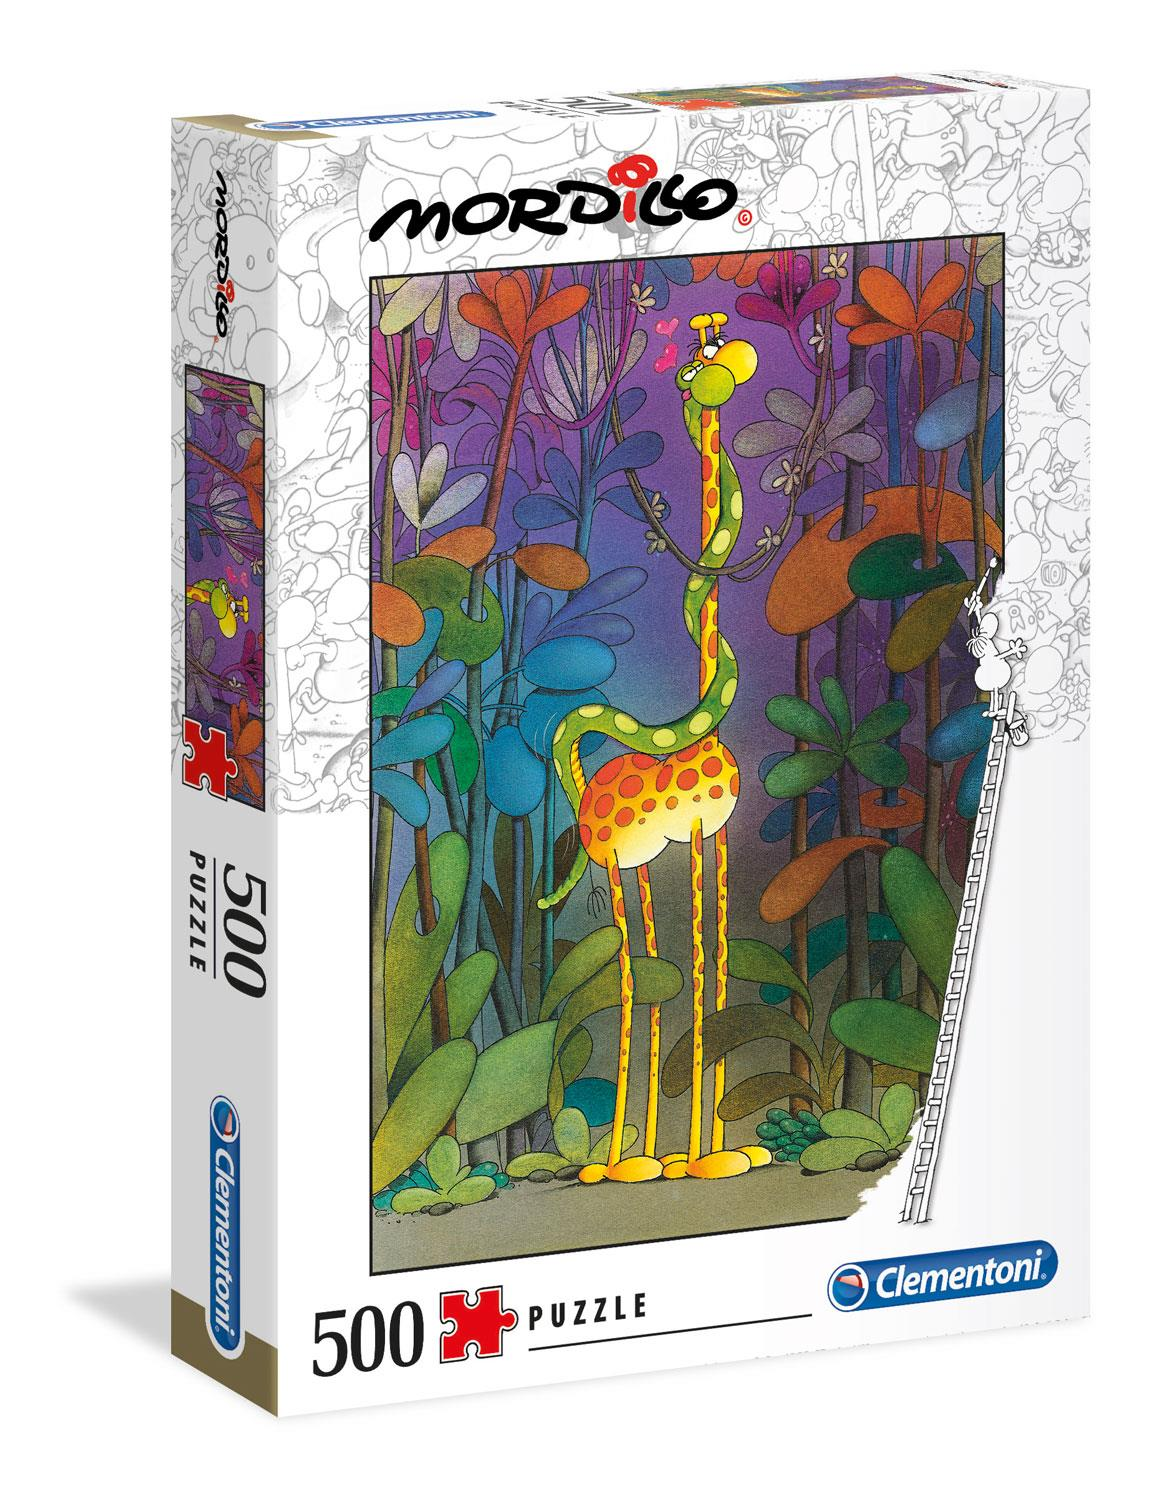 Clementoni Mordillo The Lover High Quality Jigsaw Puzzle (500 Pieces)